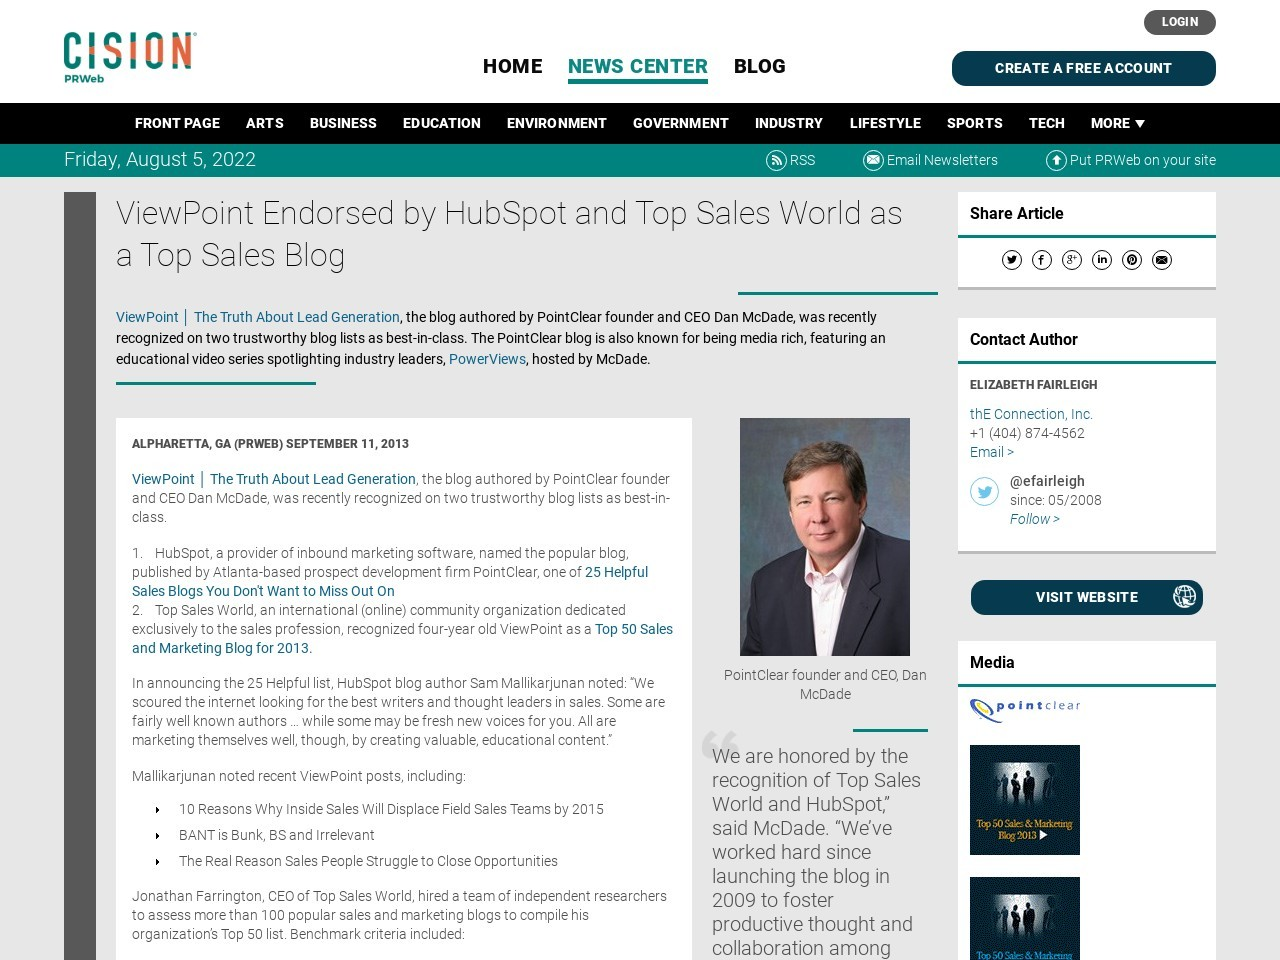 ViewPoint Endorsed by HubSpot and Top Sales World as a Top Sales Blog